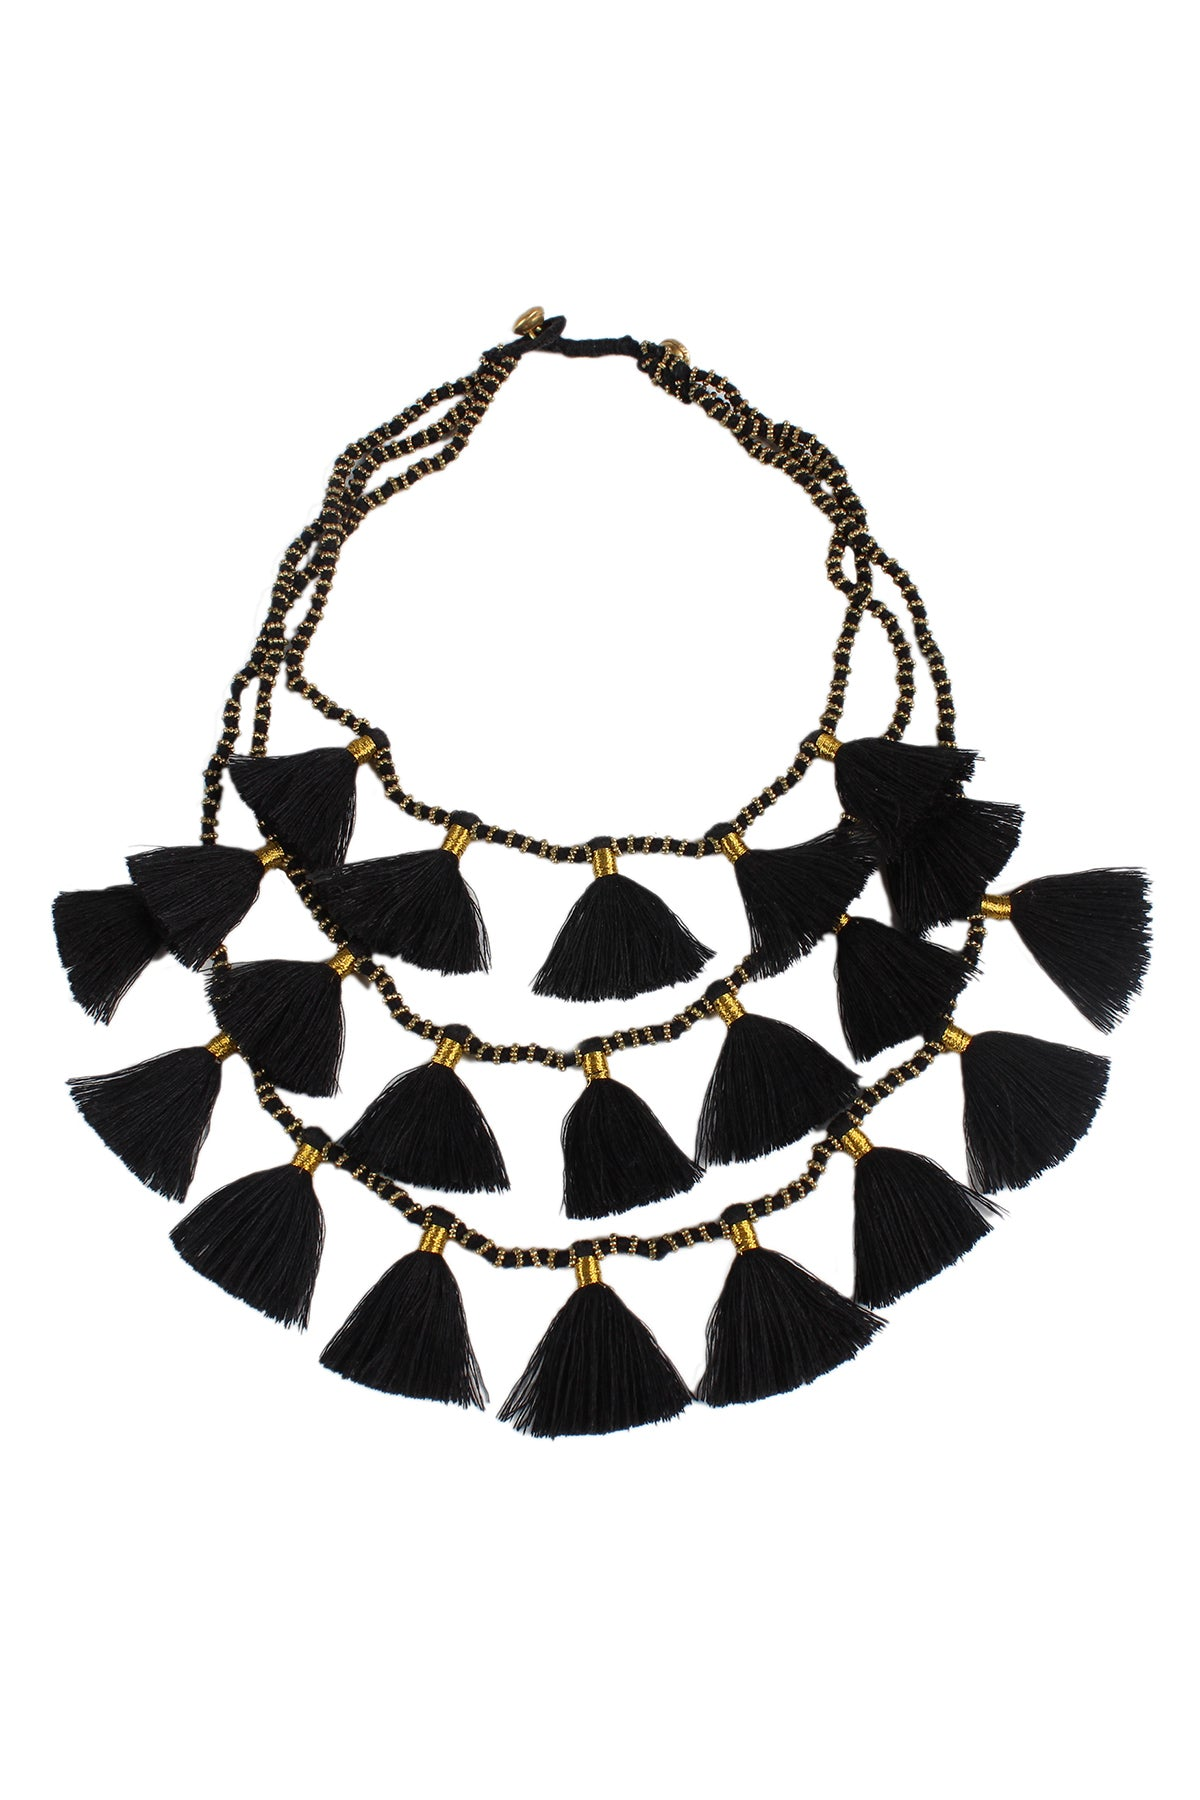 GIA NECKLACE BY BLUMA PROJECT